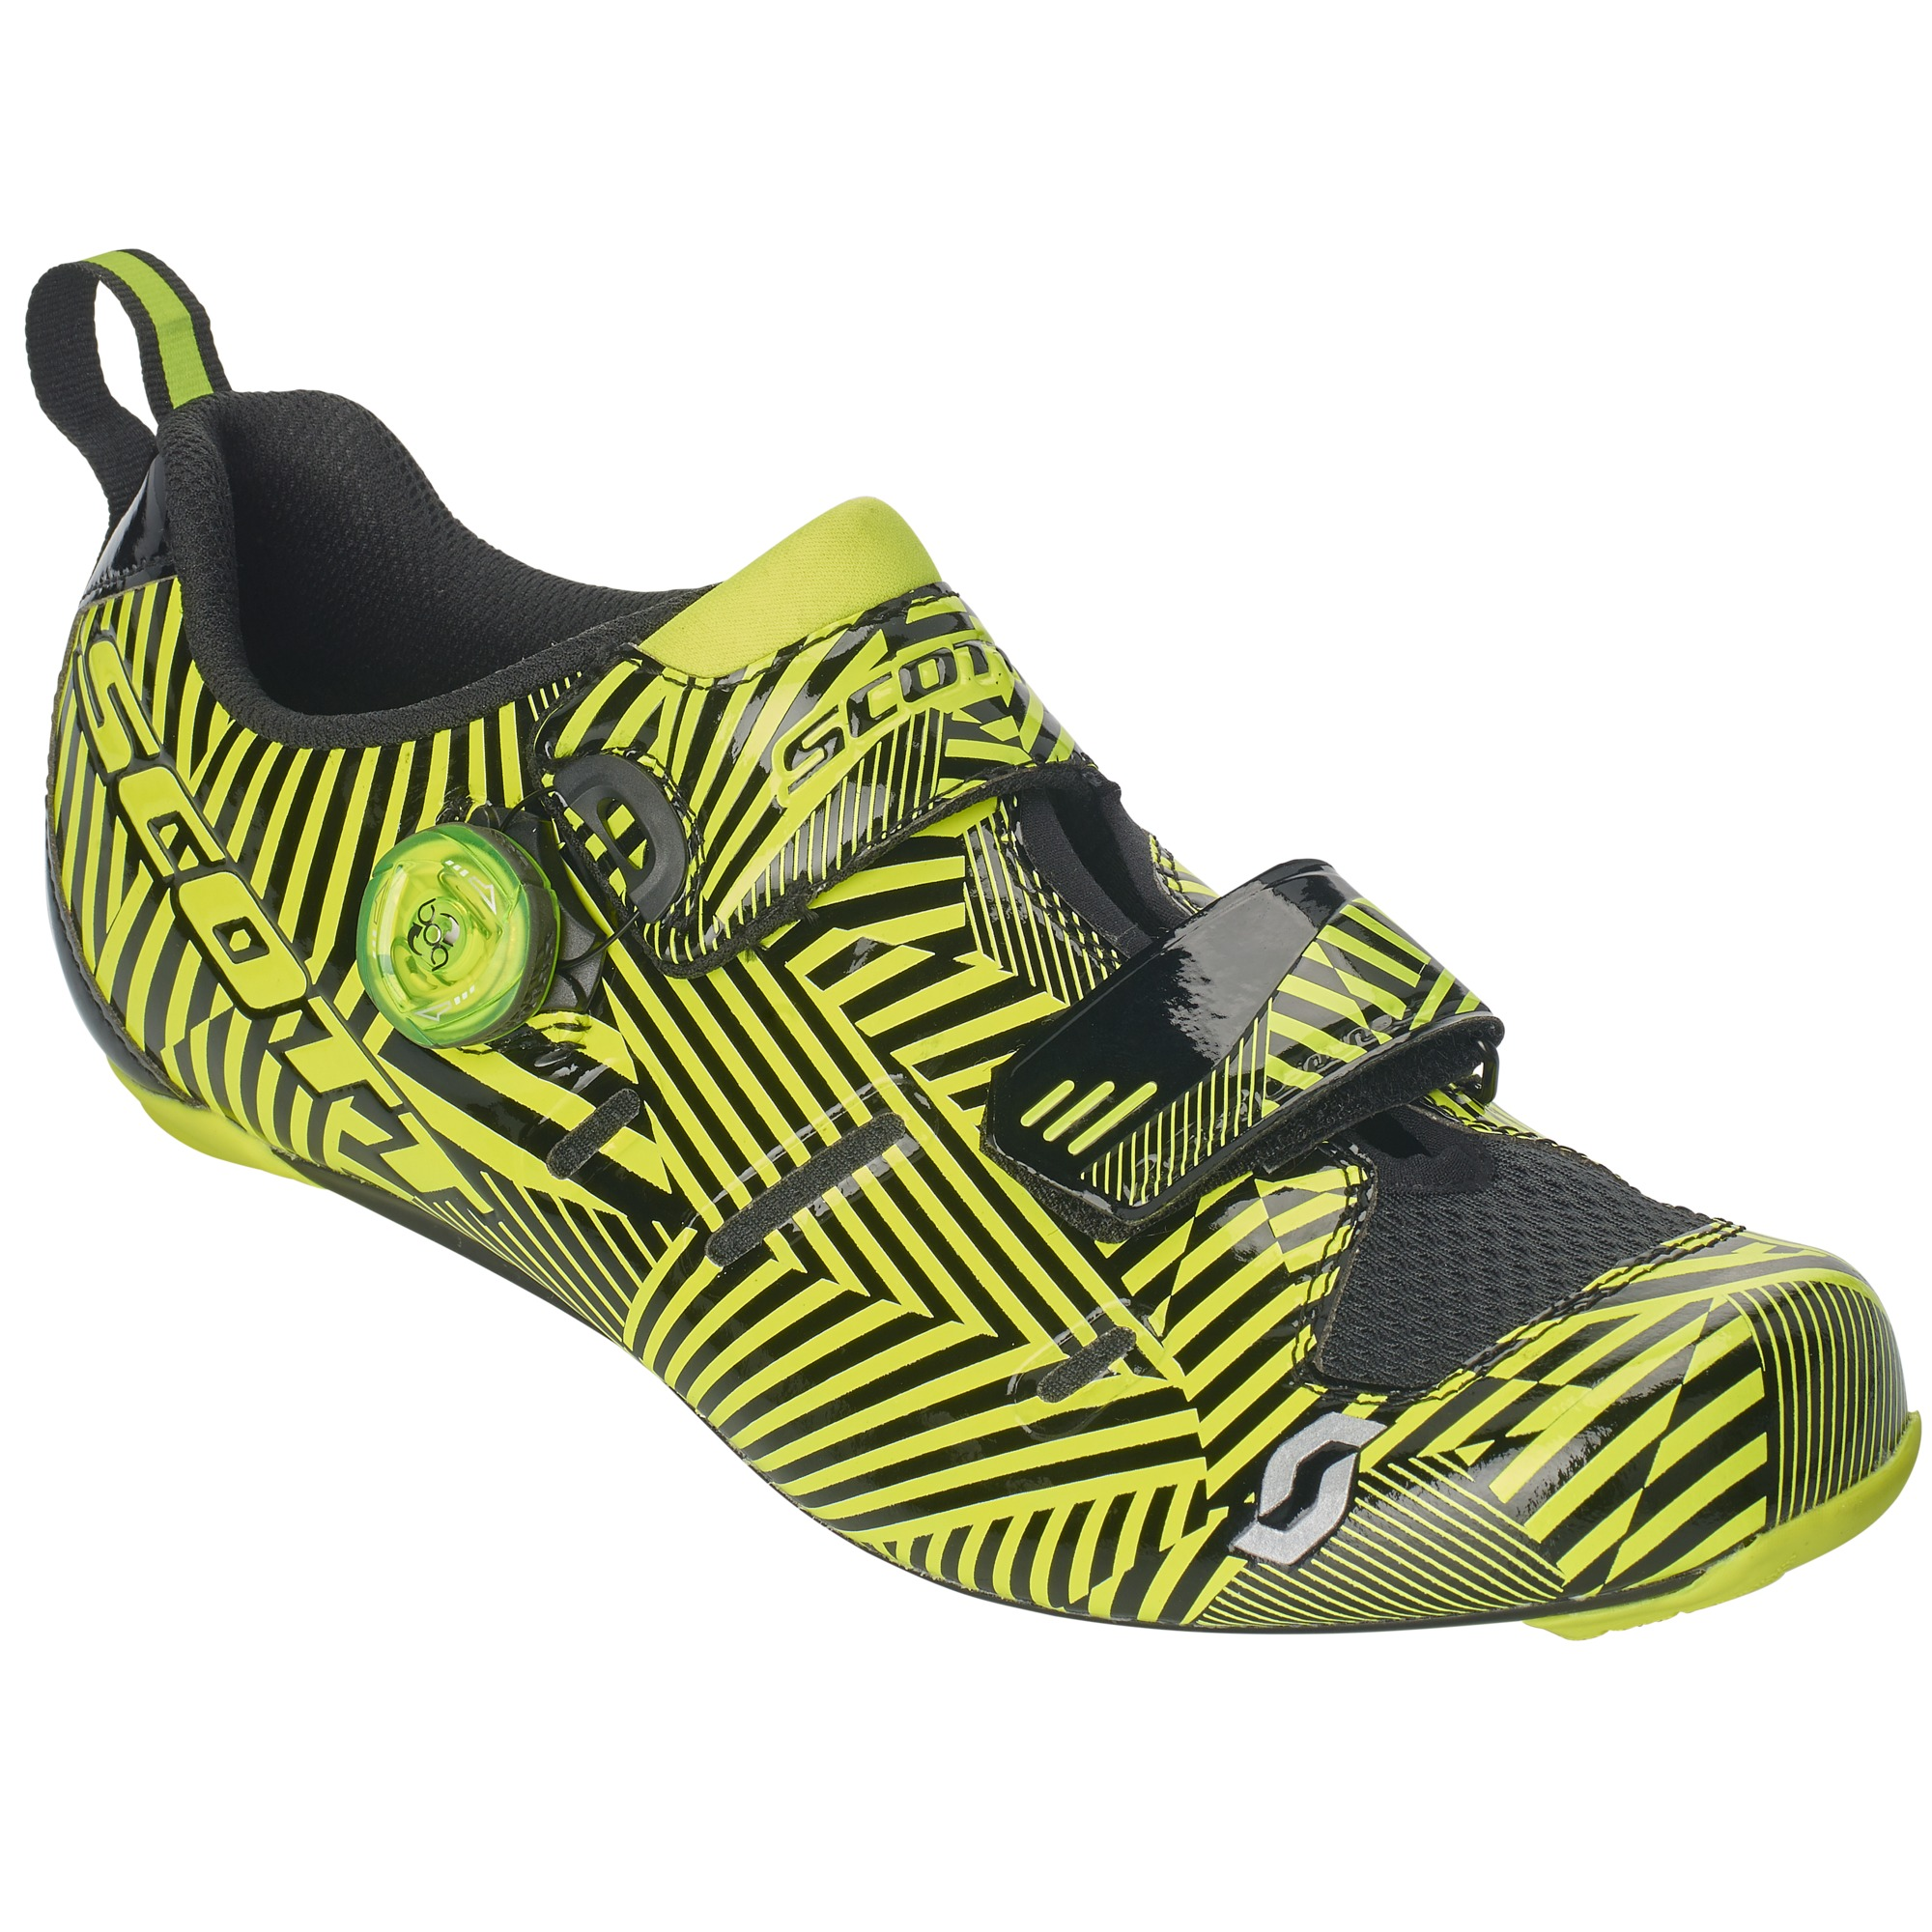 SCOTT Road Tri Carbon Shoe